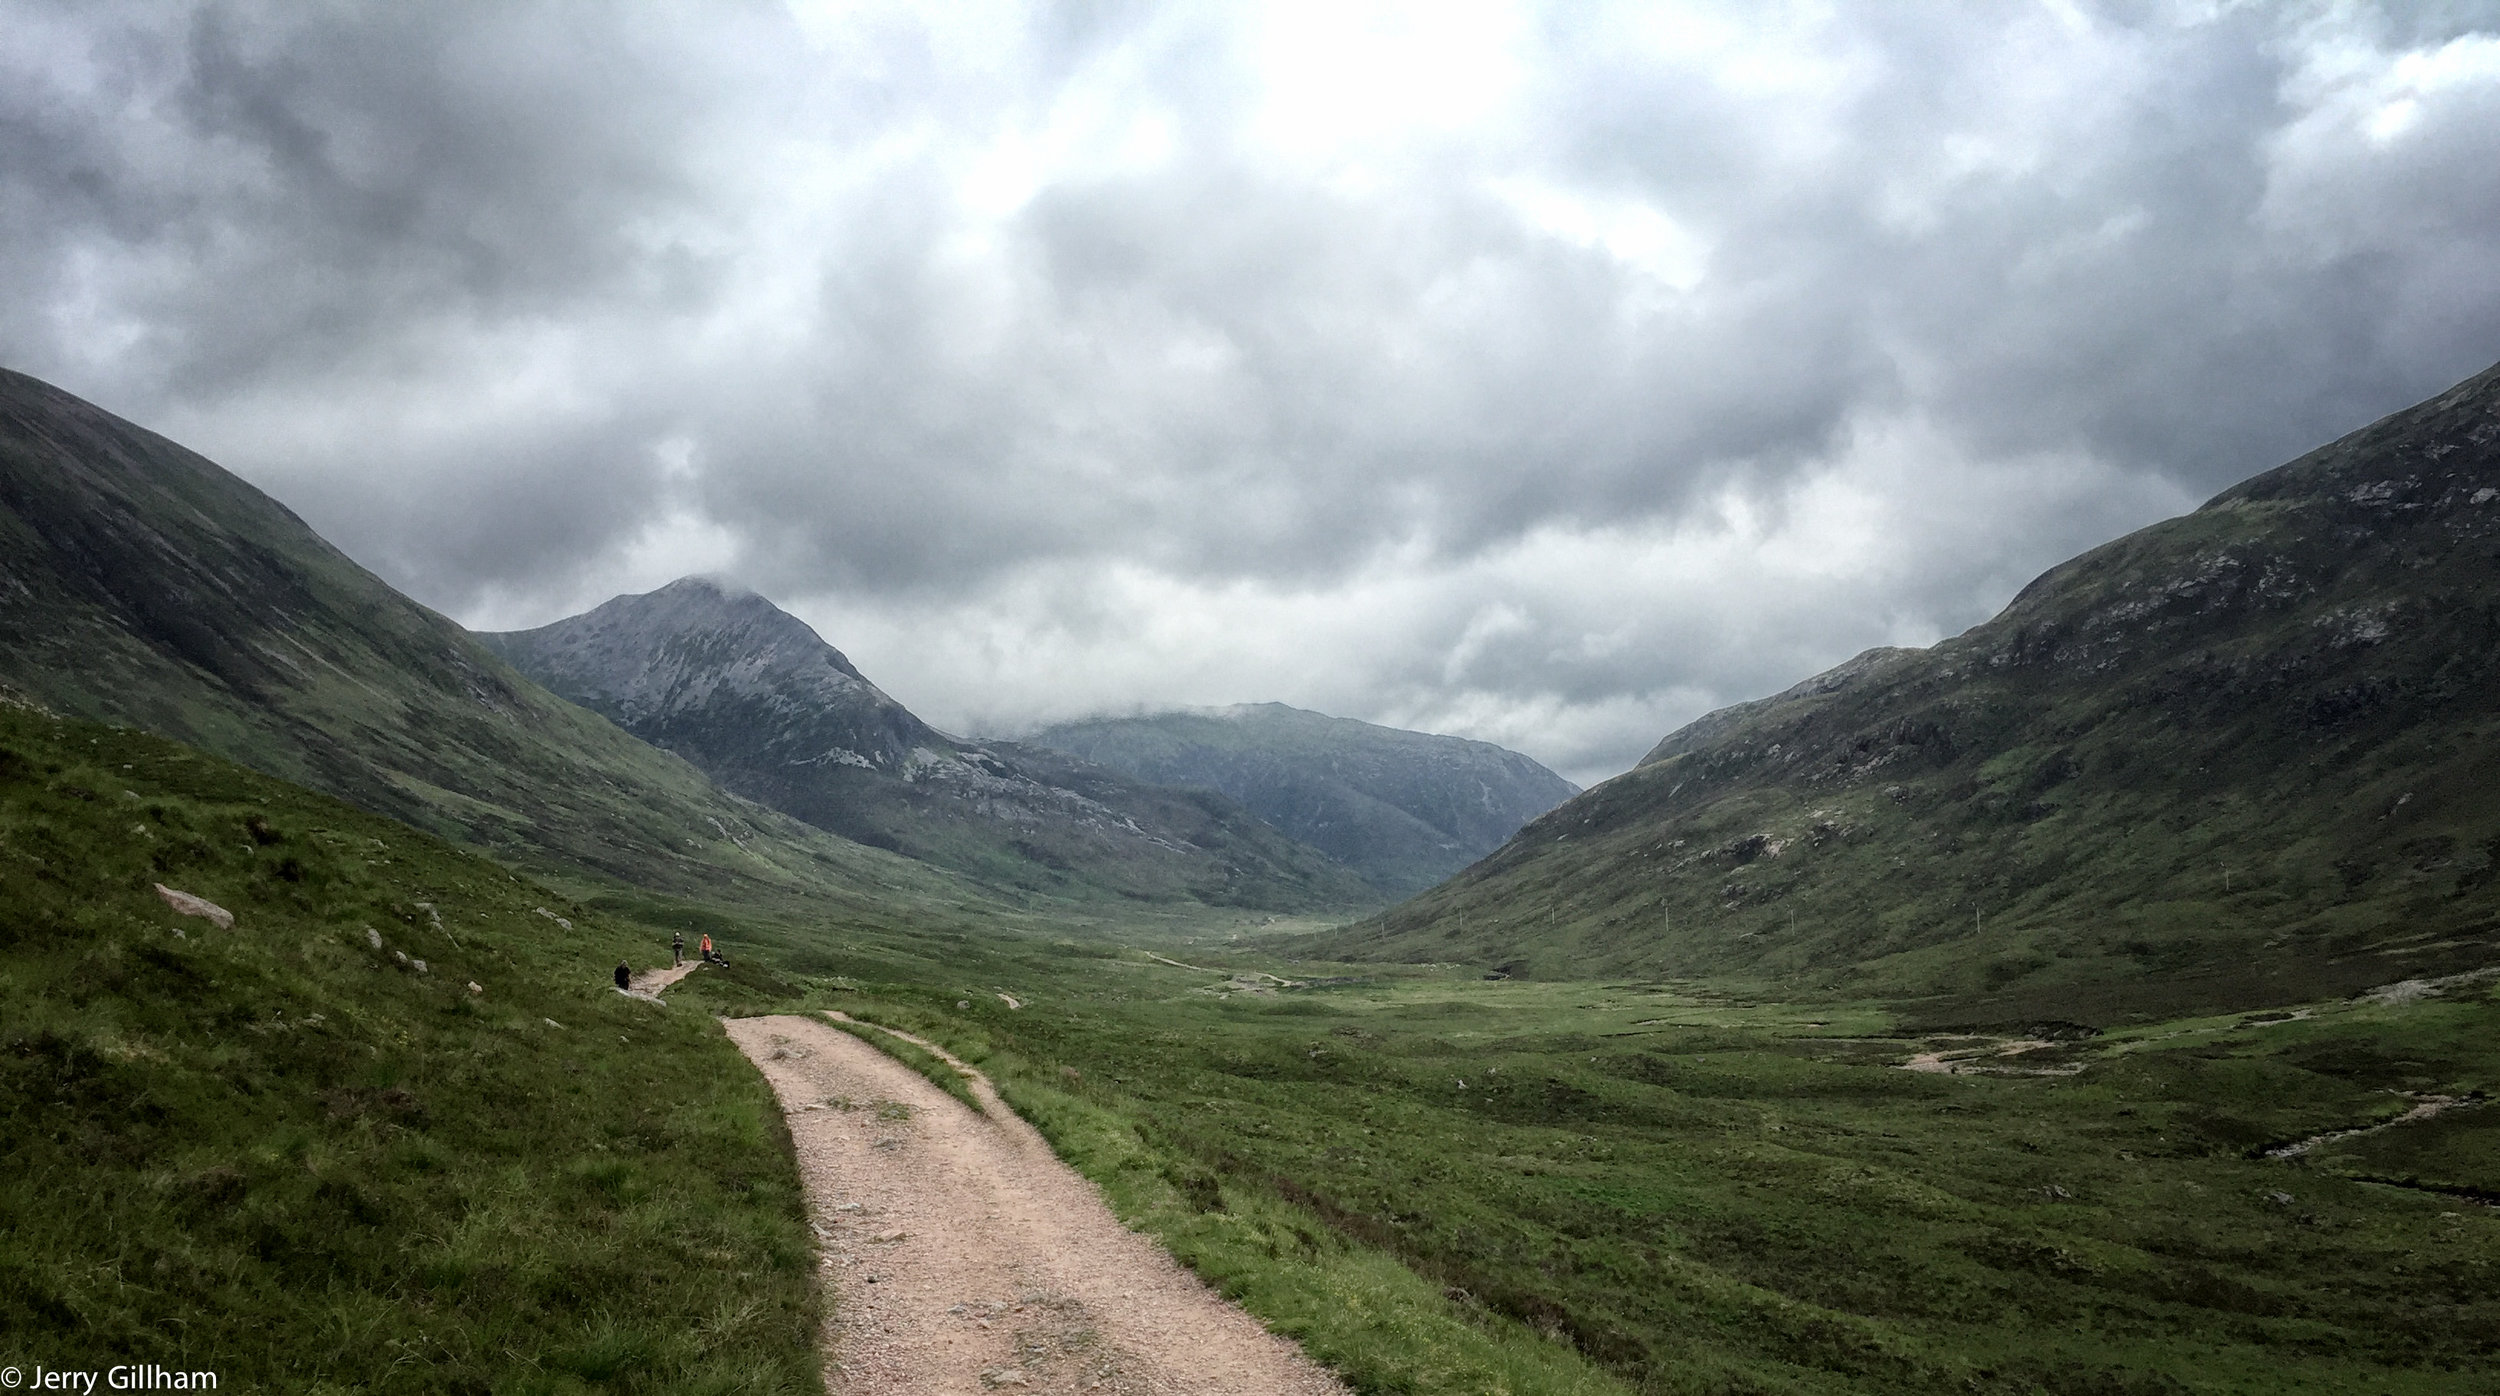 The West Highland Way is a well made track but not the easiest to cycle along which is perhaps why I met zero other cyclists. Plenty of walkers though enjoying the last stretch of their trip into Fort William.